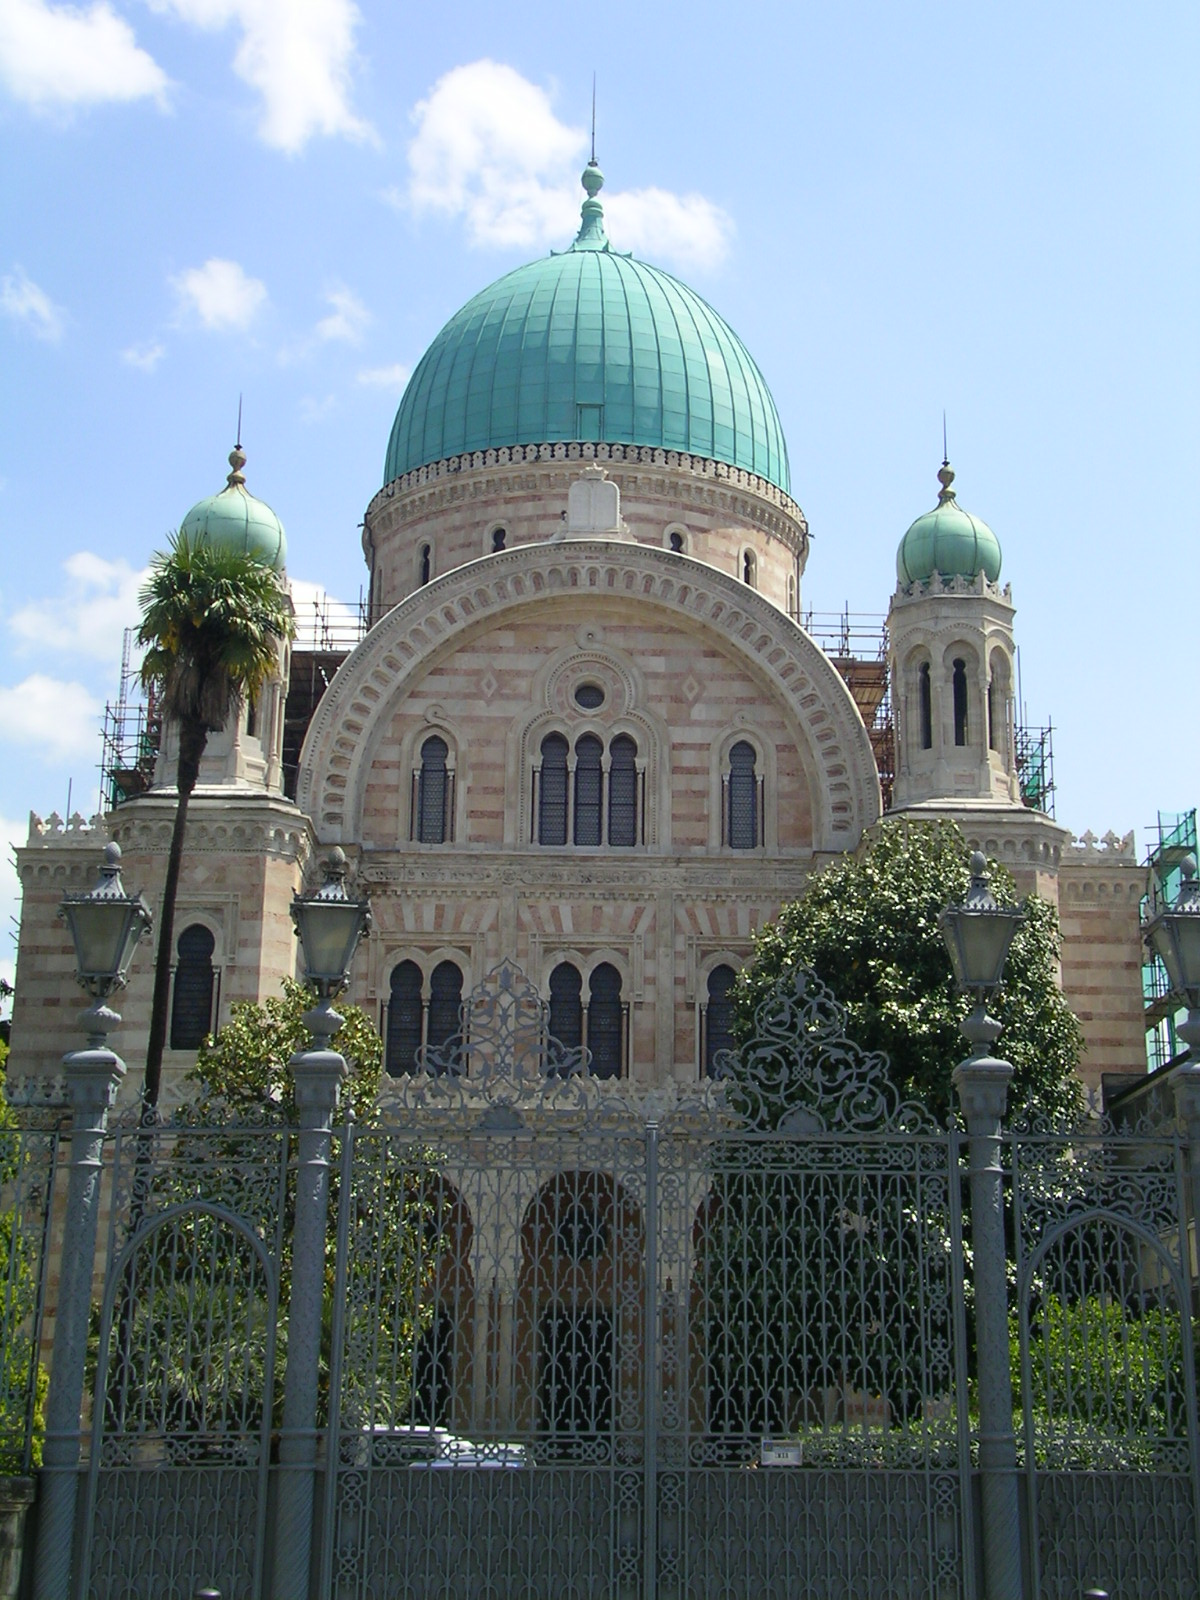 http://upload.wikimedia.org/wikipedia/commons/d/d0/Tempio_Israelitico.JPG